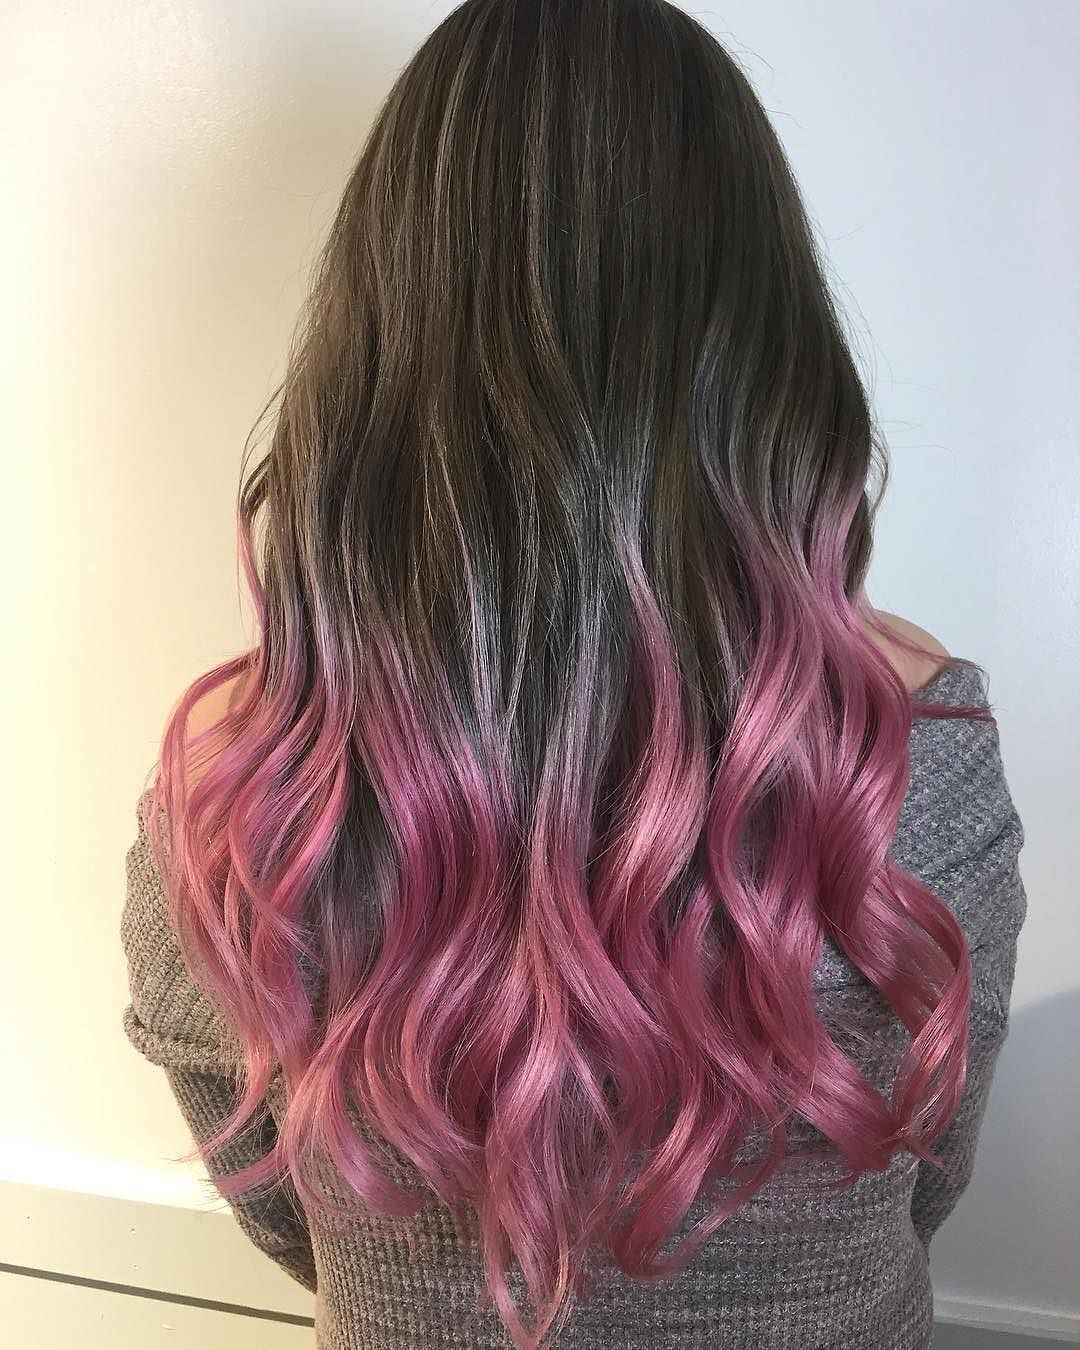 If You Can T Decide Between Pink And Brown The Answer Is Both Moses Haiier Used Overtone Vibrant Pink On This S Pink Hair Pink Purple Hair Pastel Pink Hair